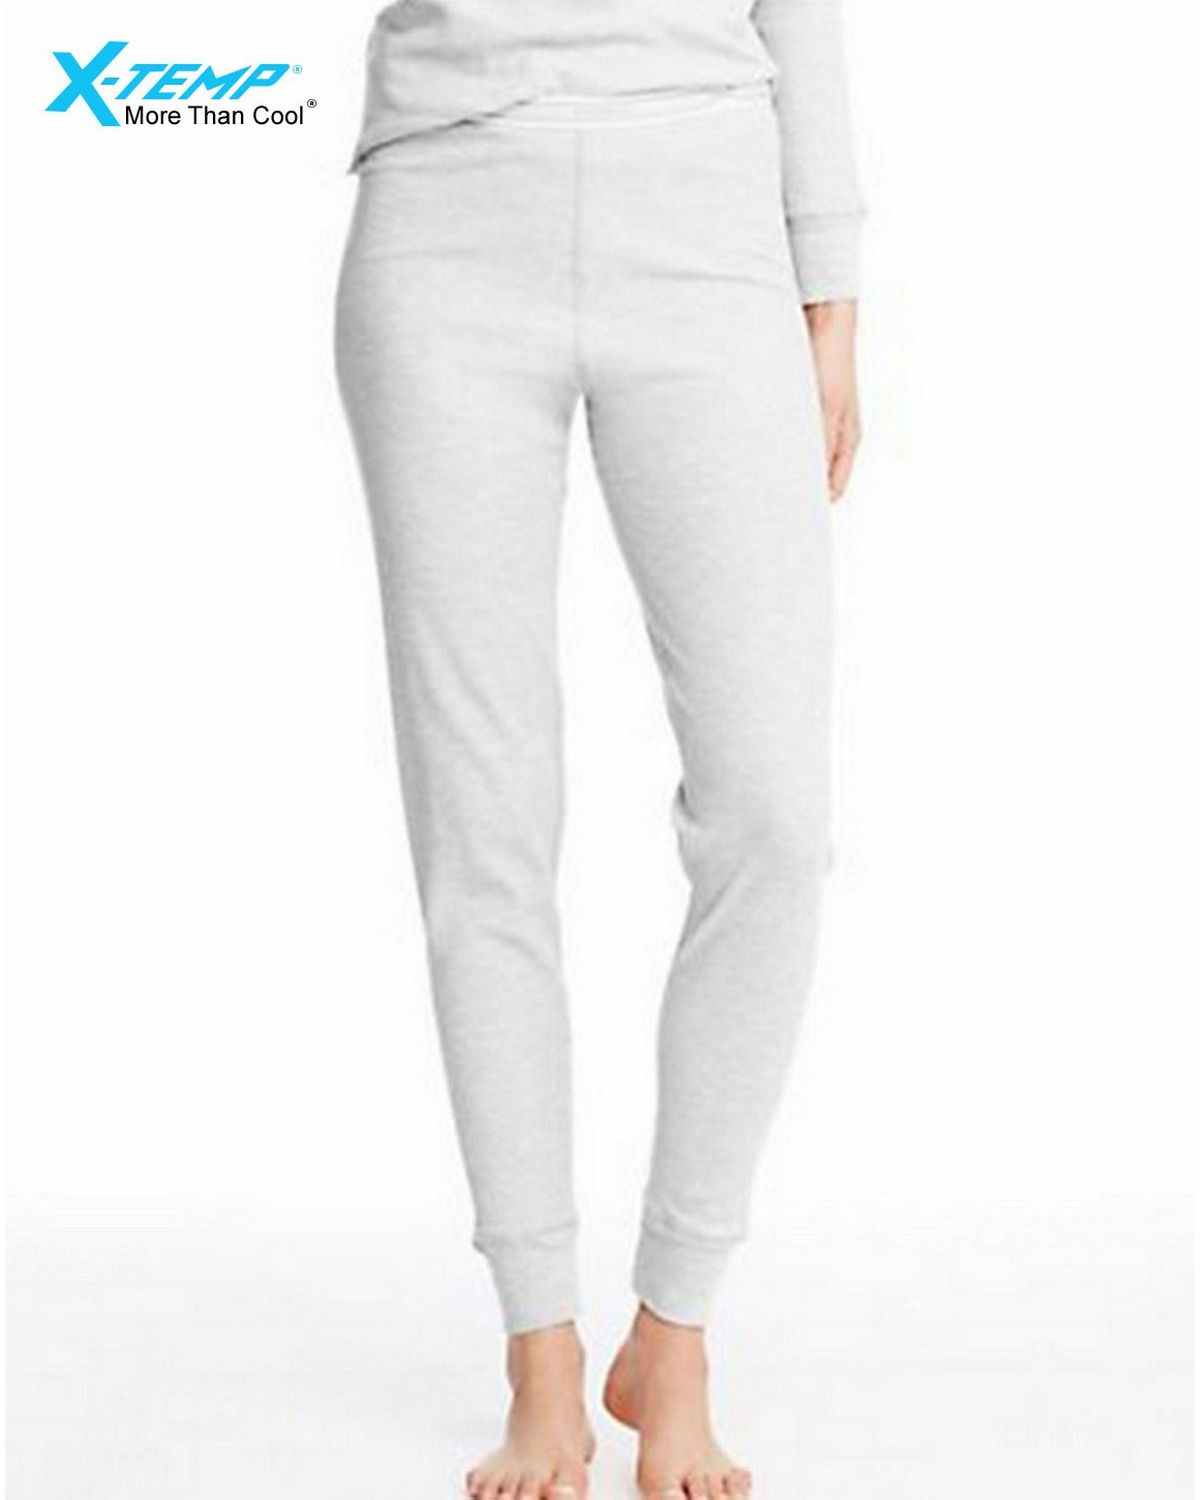 Hanes 25483 Womens X-Temp Thermal Pant - Snow White - XL 25483